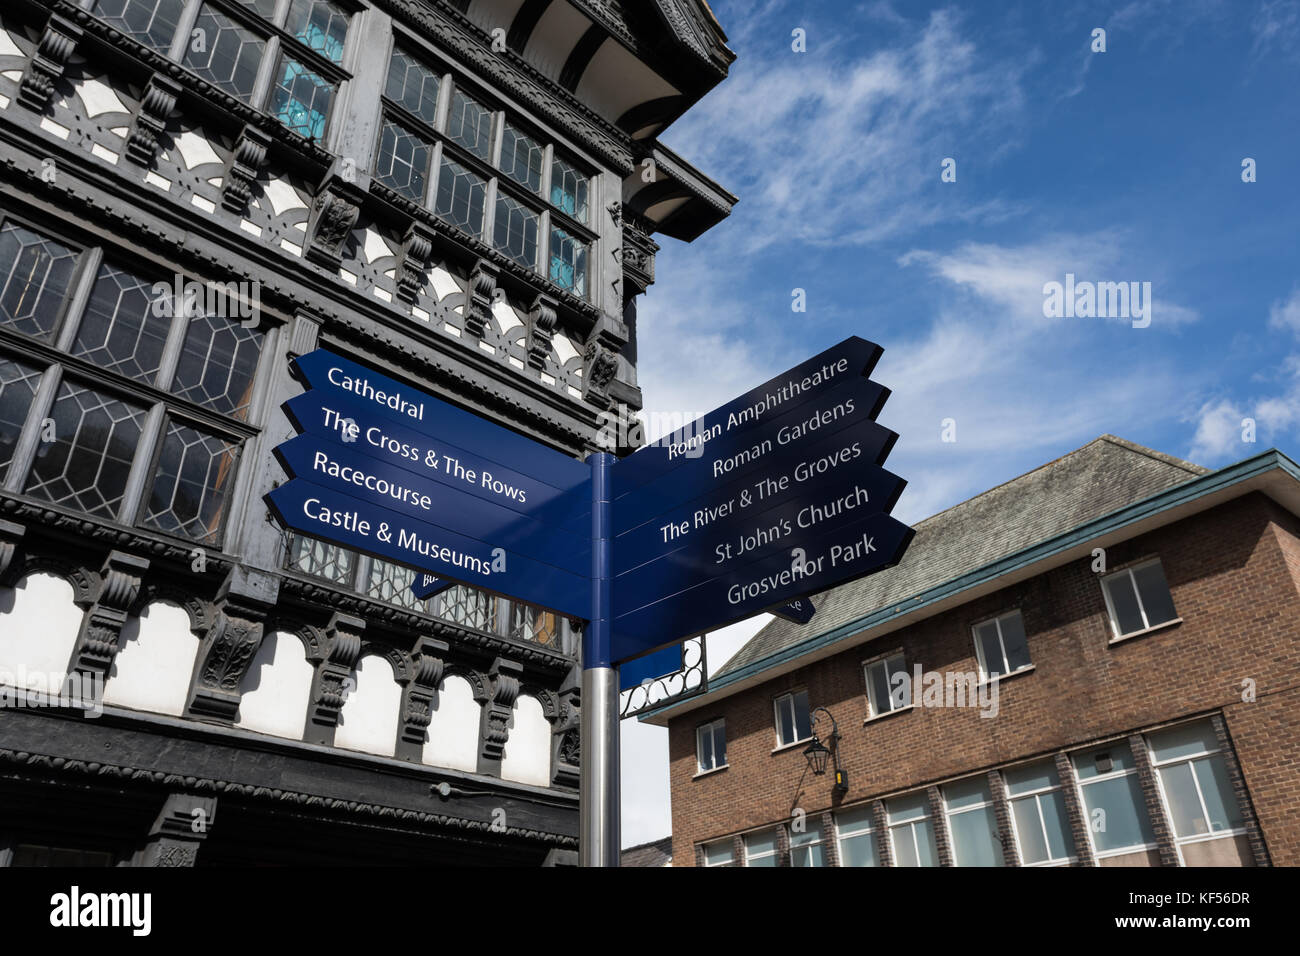 Signpost showing directions to the points of interest and landmarks in Chester, Cheshire, UK - Stock Image